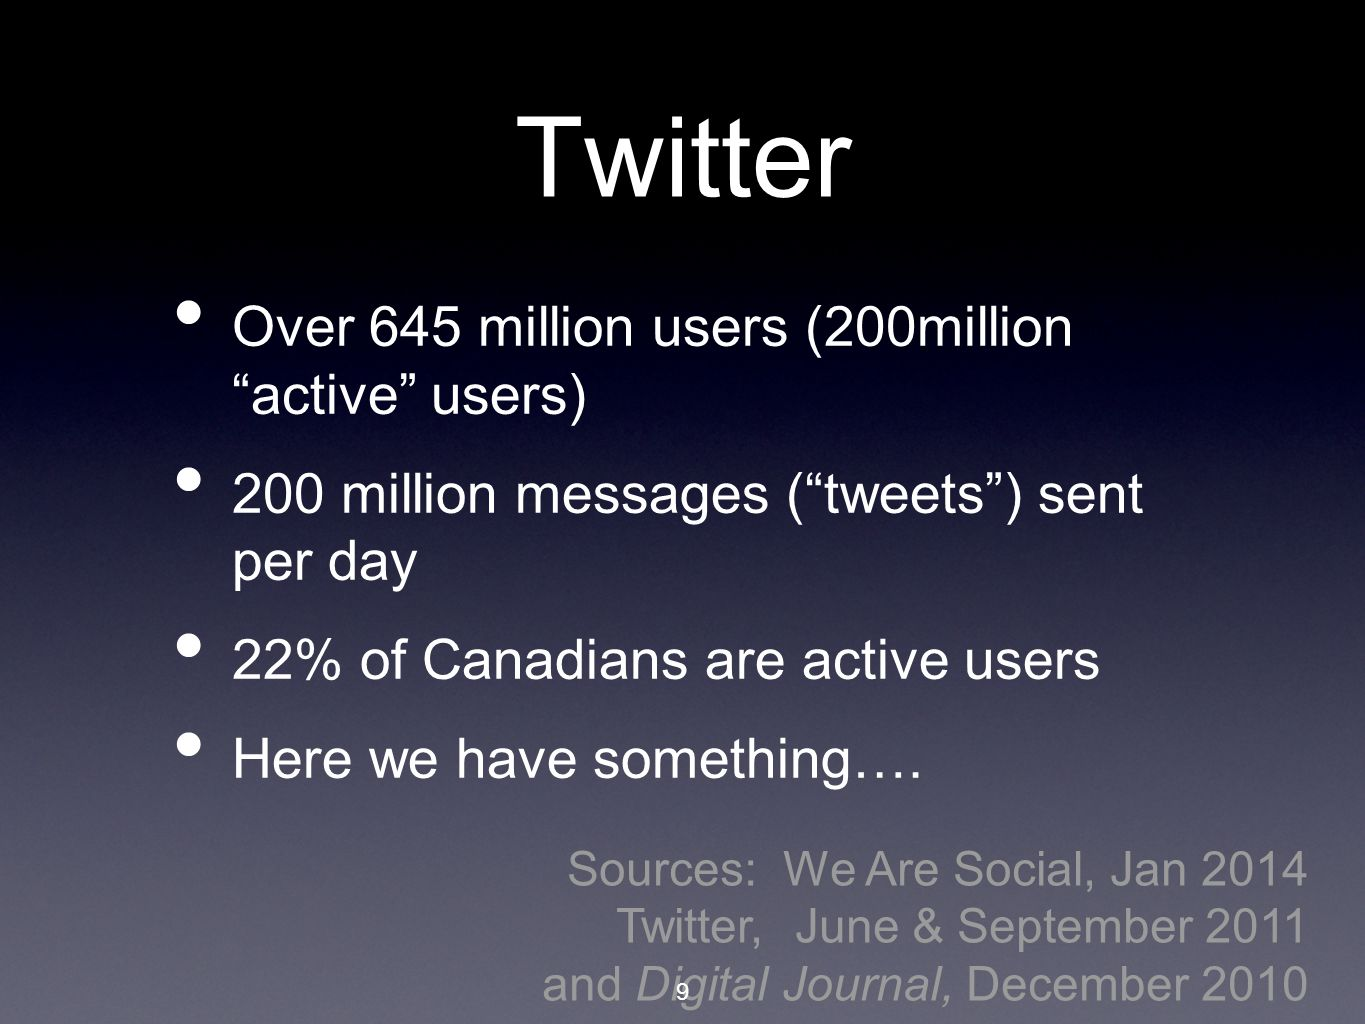 Twitter Over 645 million users (200million active users) 200 million messages ( tweets ) sent per day 22% of Canadians are active users Here we have something….